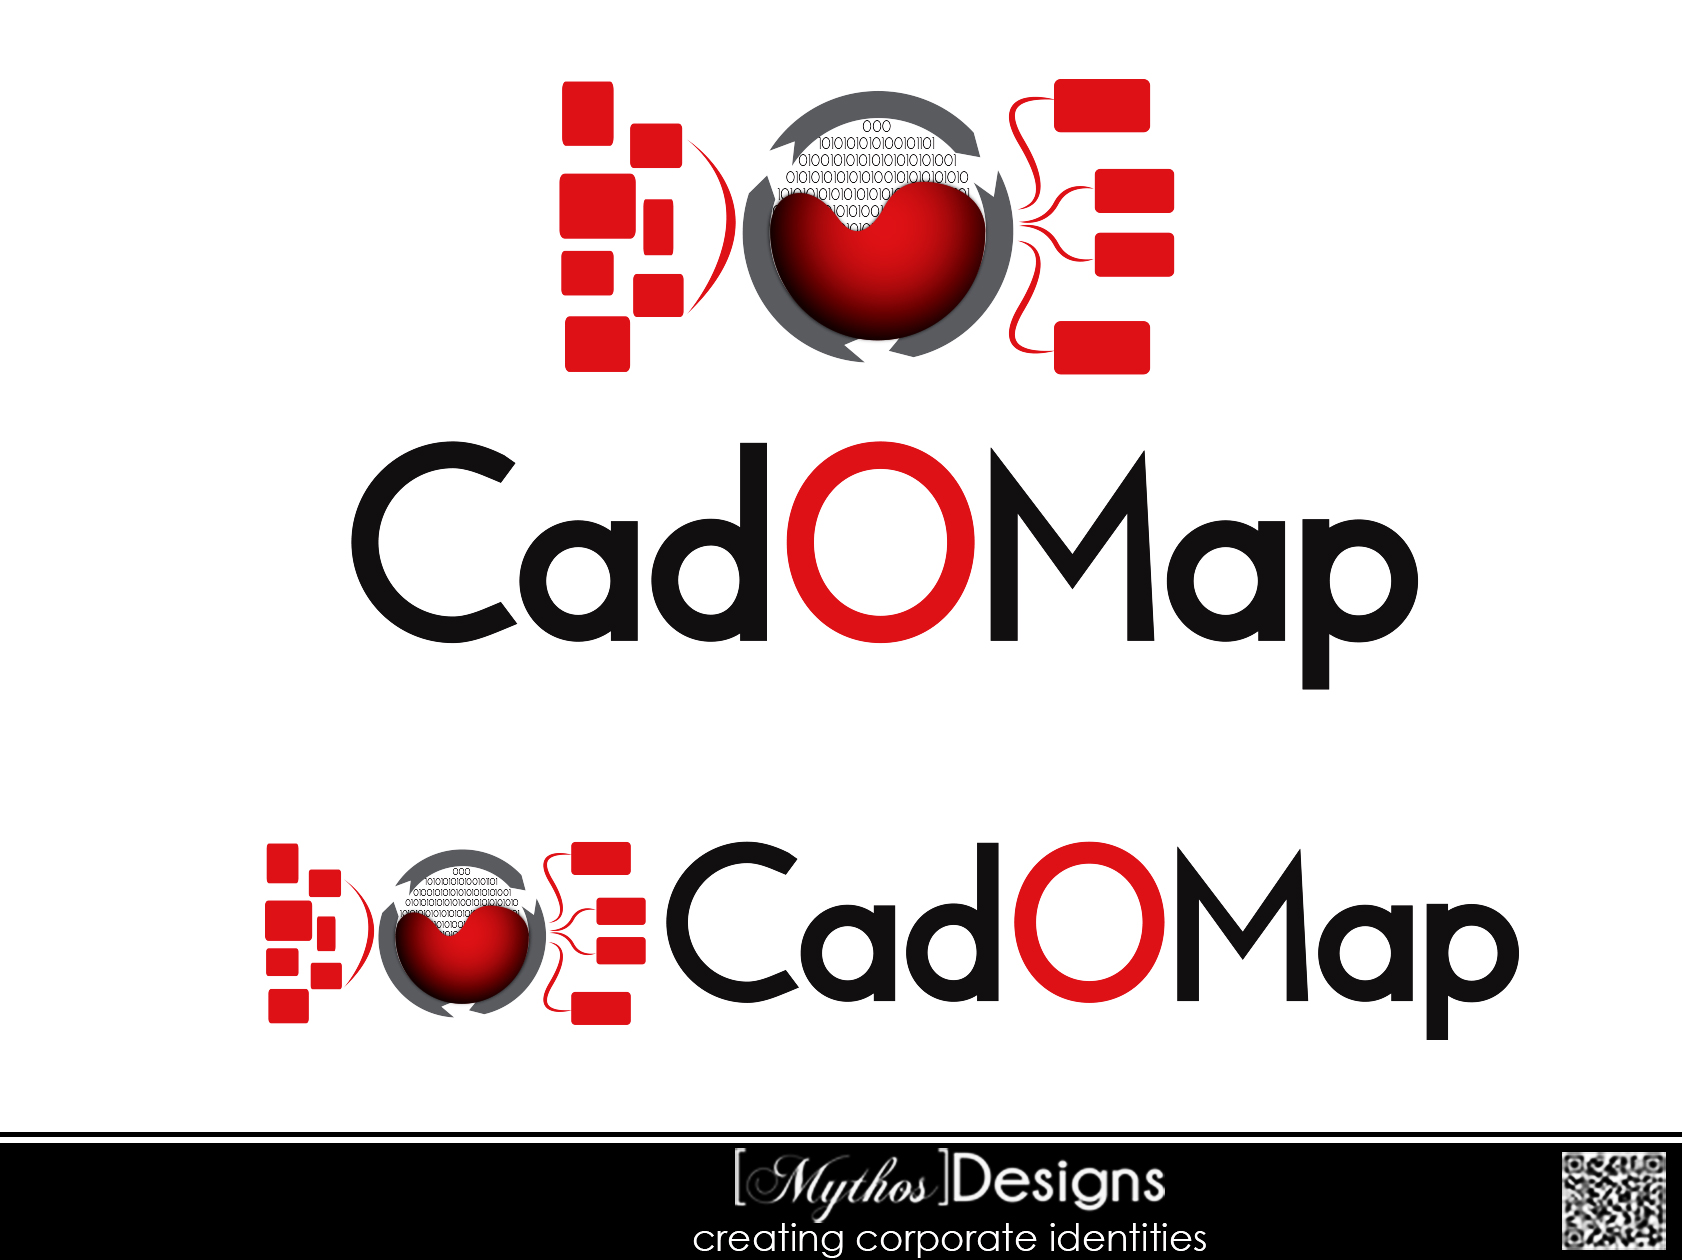 Logo Design by Mythos Designs - Entry No. 80 in the Logo Design Contest Captivating Logo Design for CadOMap software product.